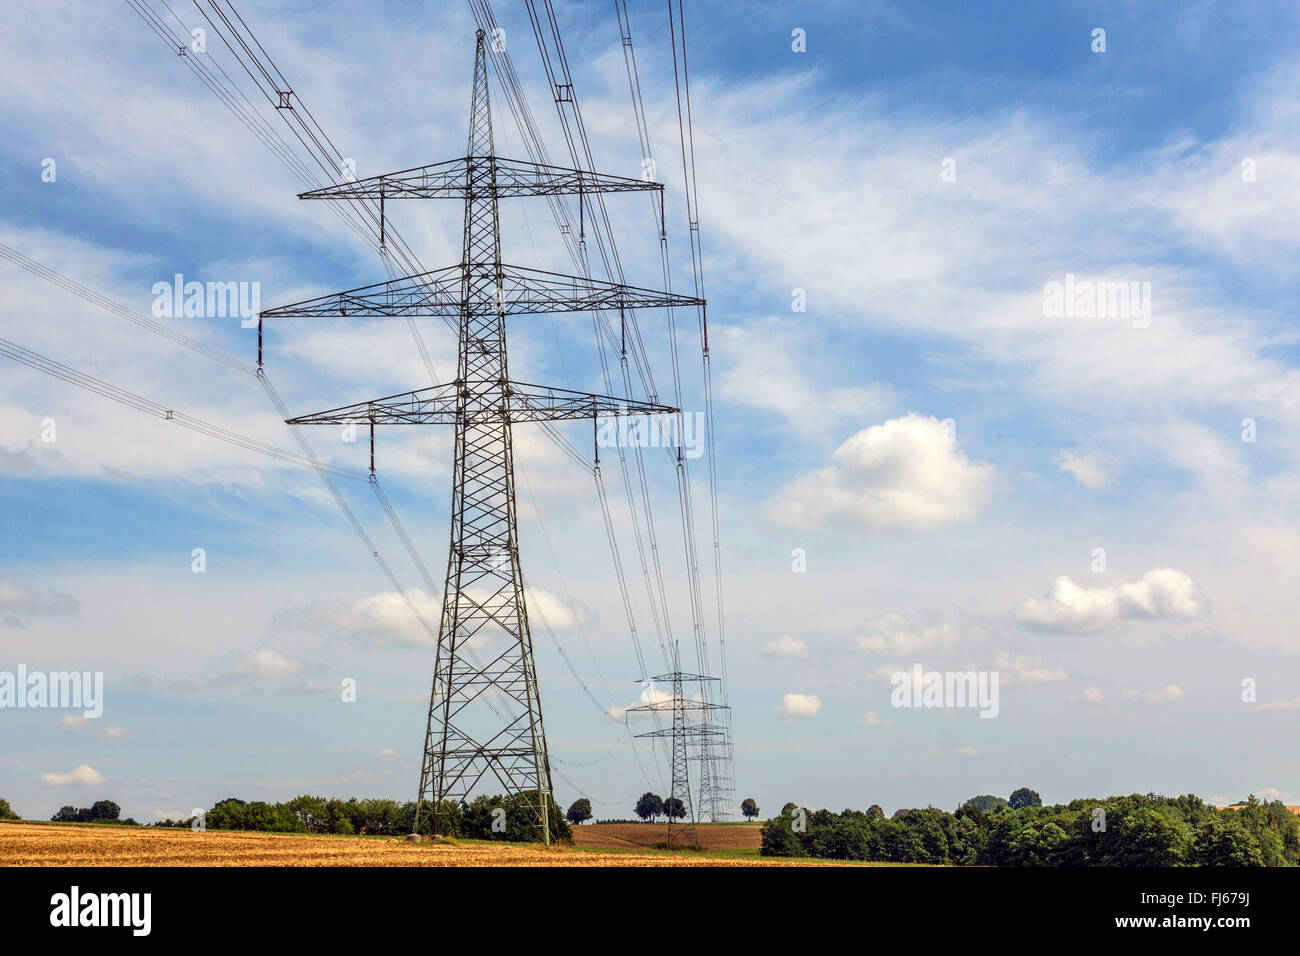 high-tension lines in field landscape, Germany, Bavaria, Oberbayern, Upper Bavaria - Stock Image